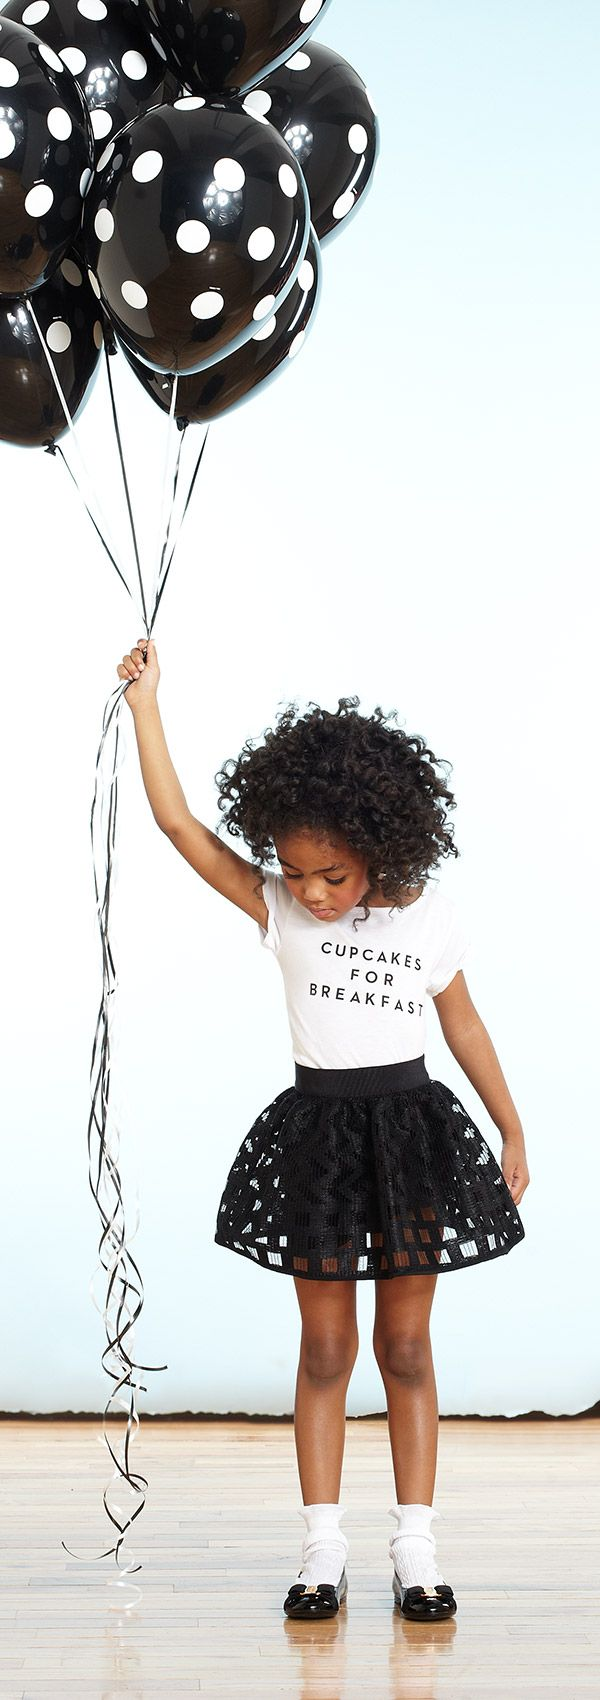 Above the Rest: Watch her float on air with the new collection for girls by Milly Minis.